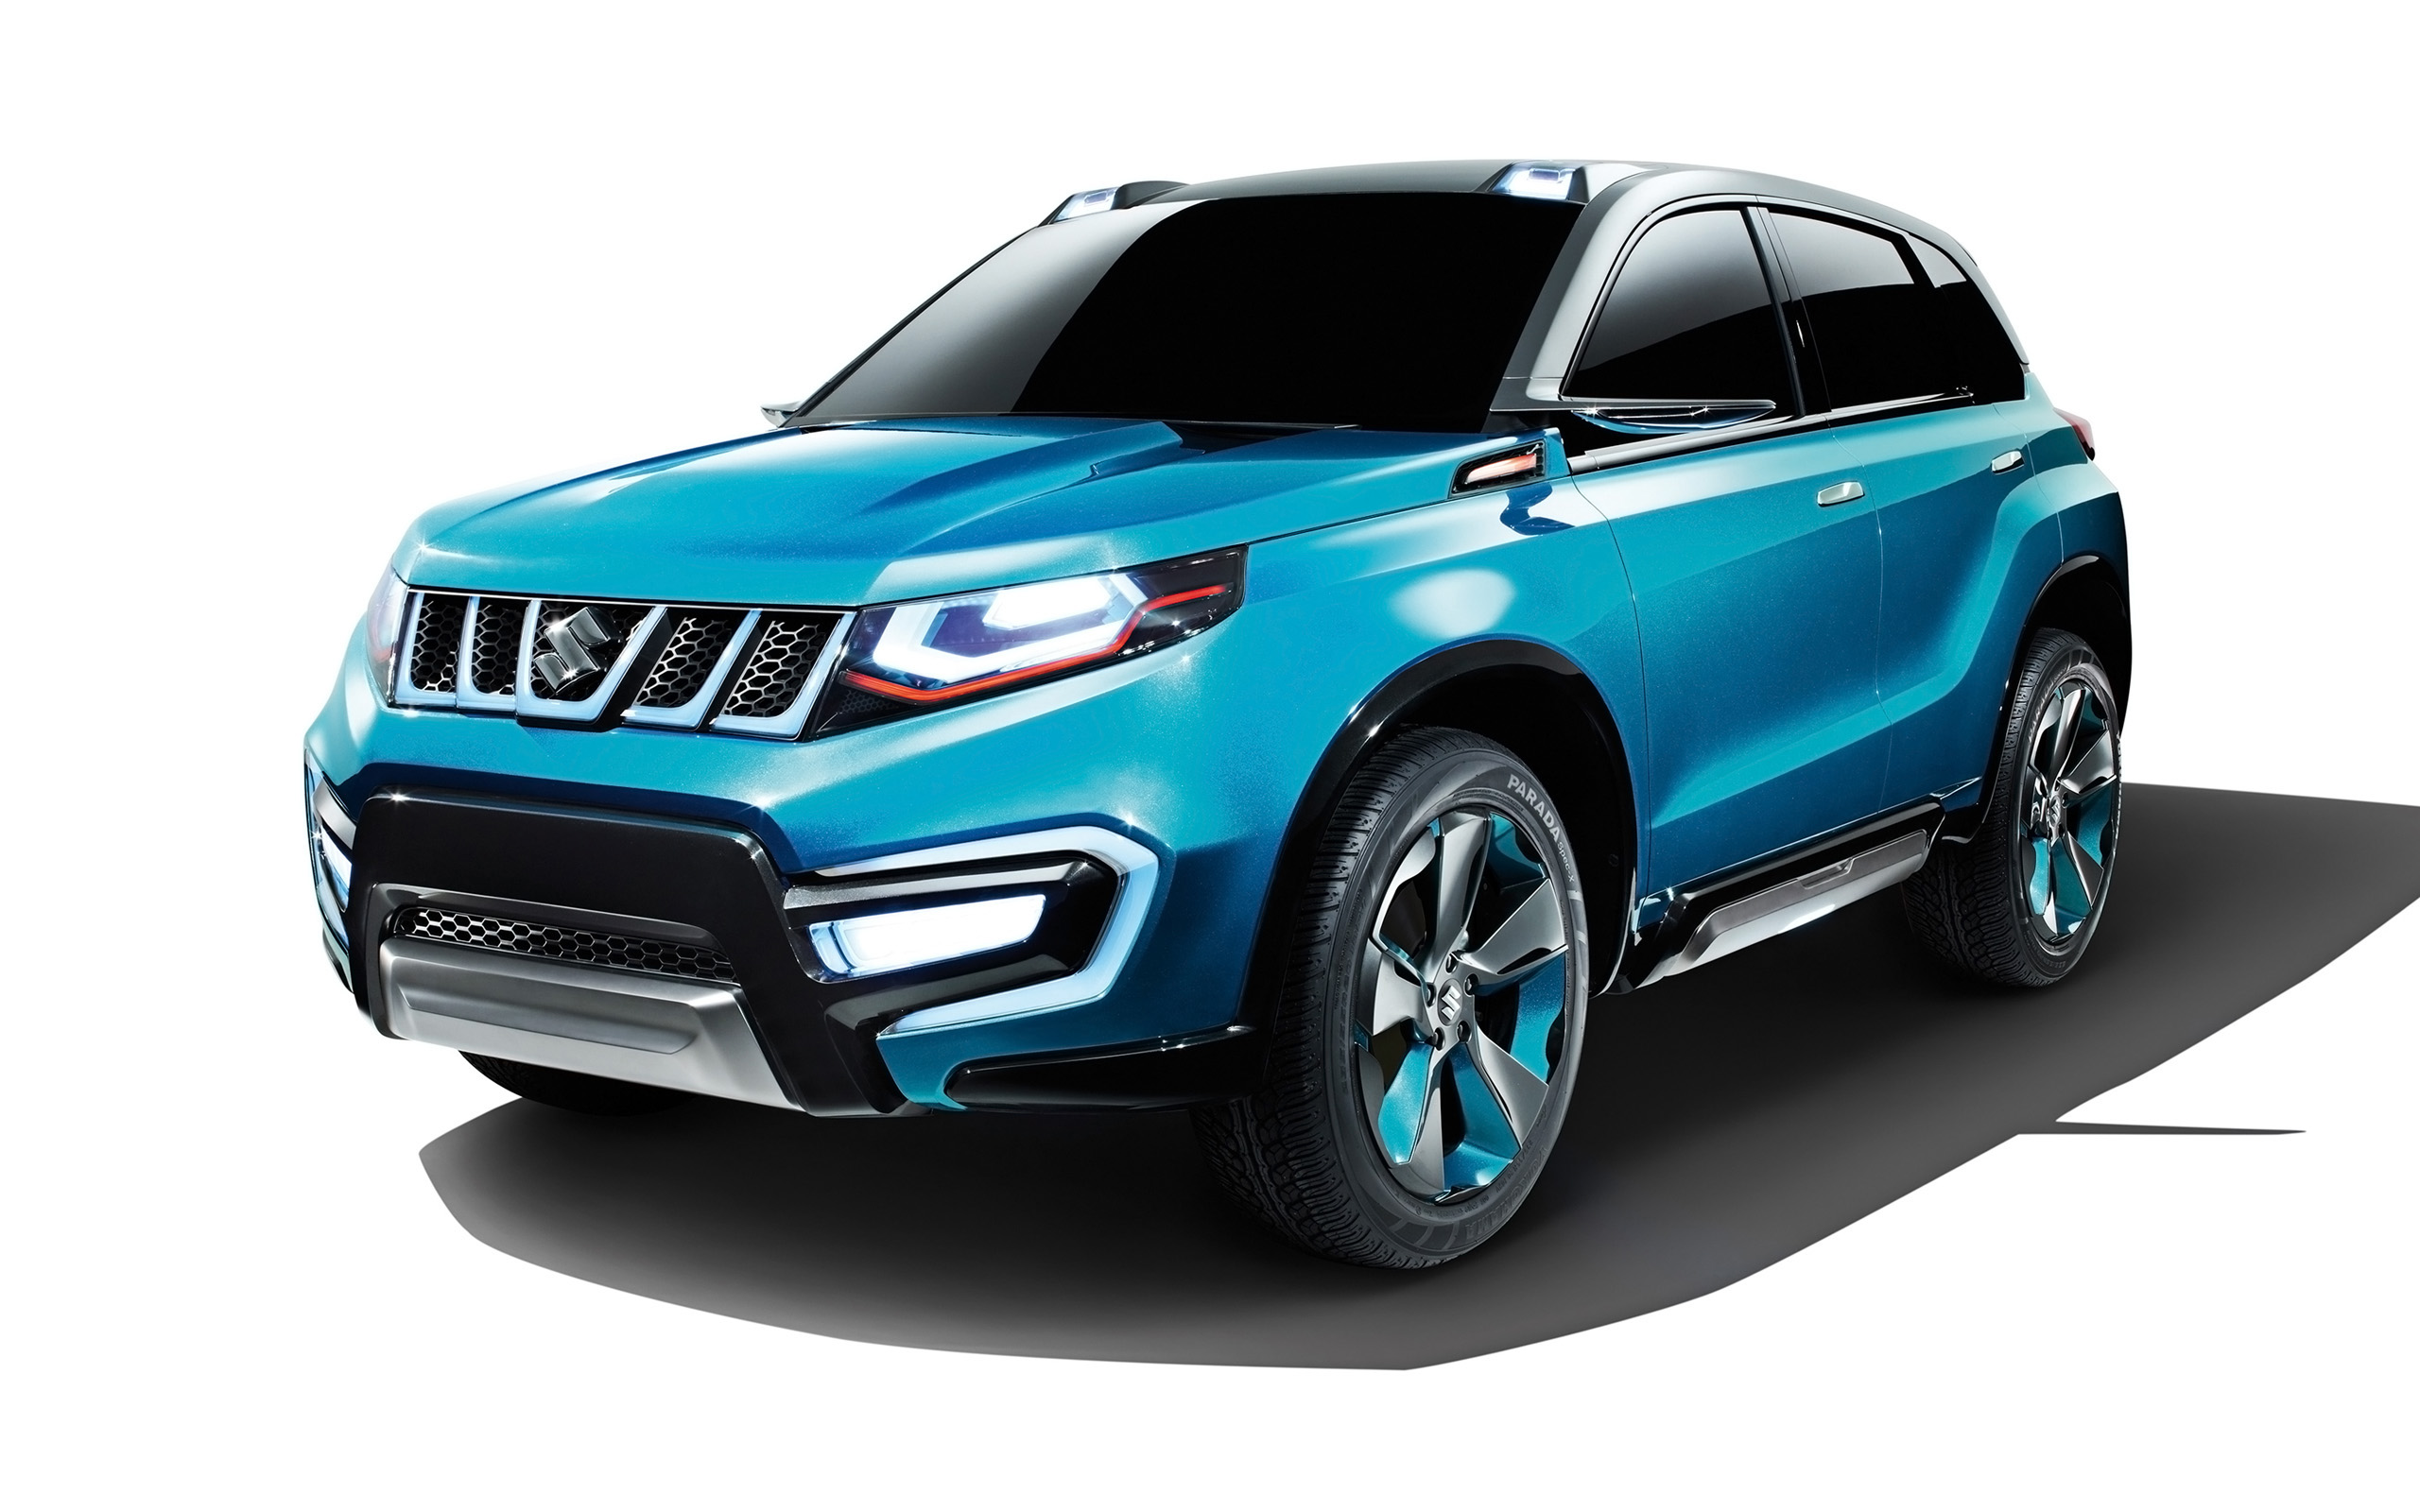 2013 suzuki iv 4 compact suv concept wallpaper hd car wallpapers